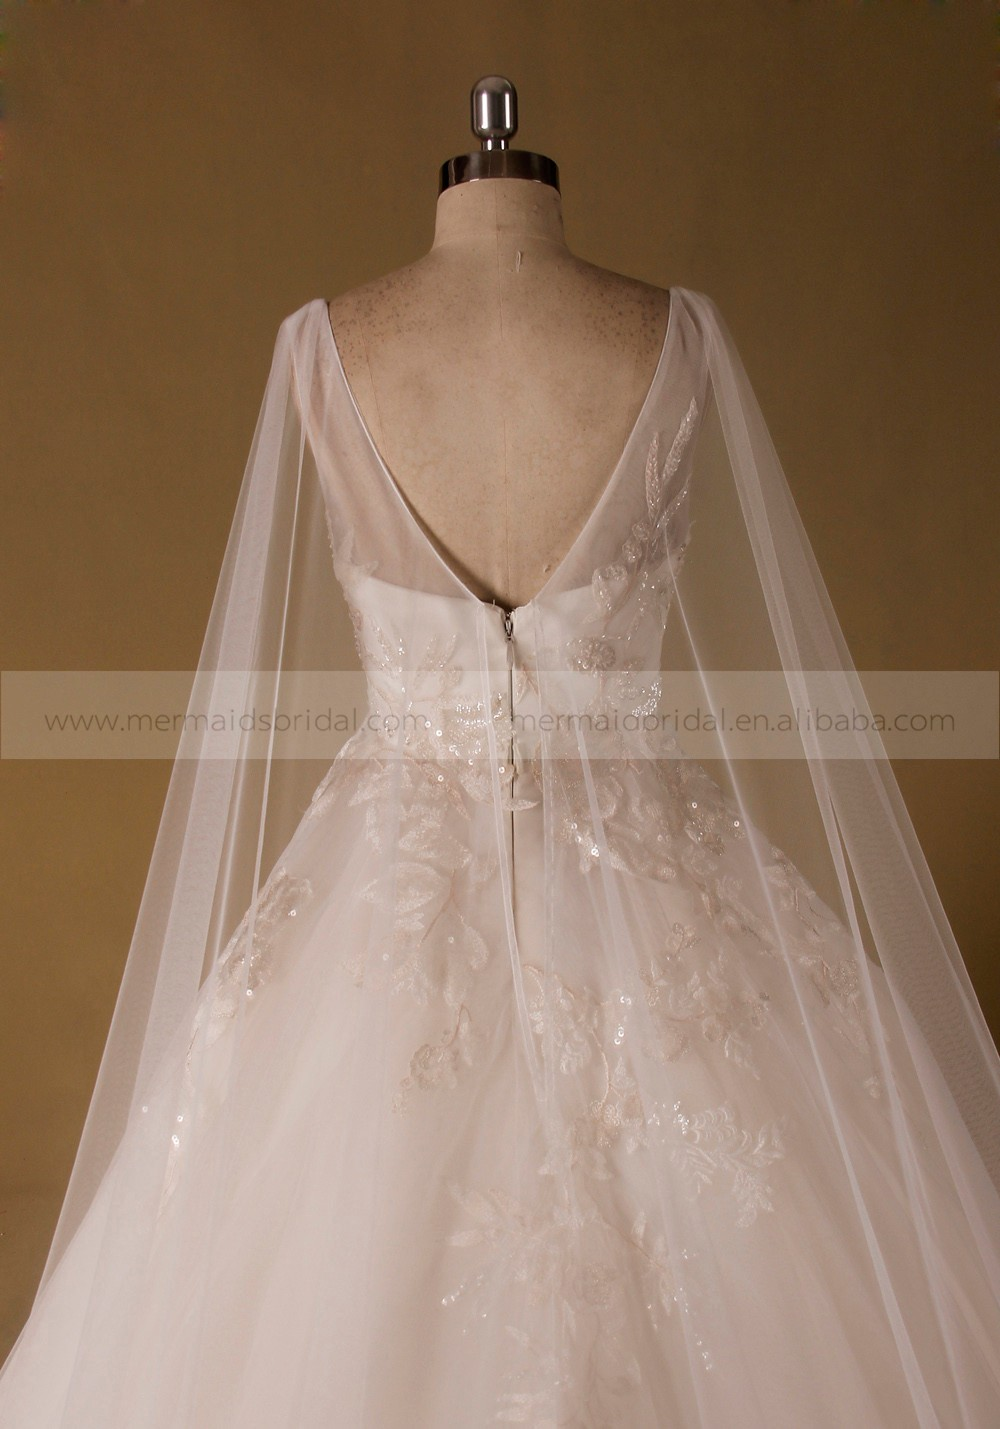 Eiffel Wedding Dress, Eiffel Wedding Dress Suppliers and ...